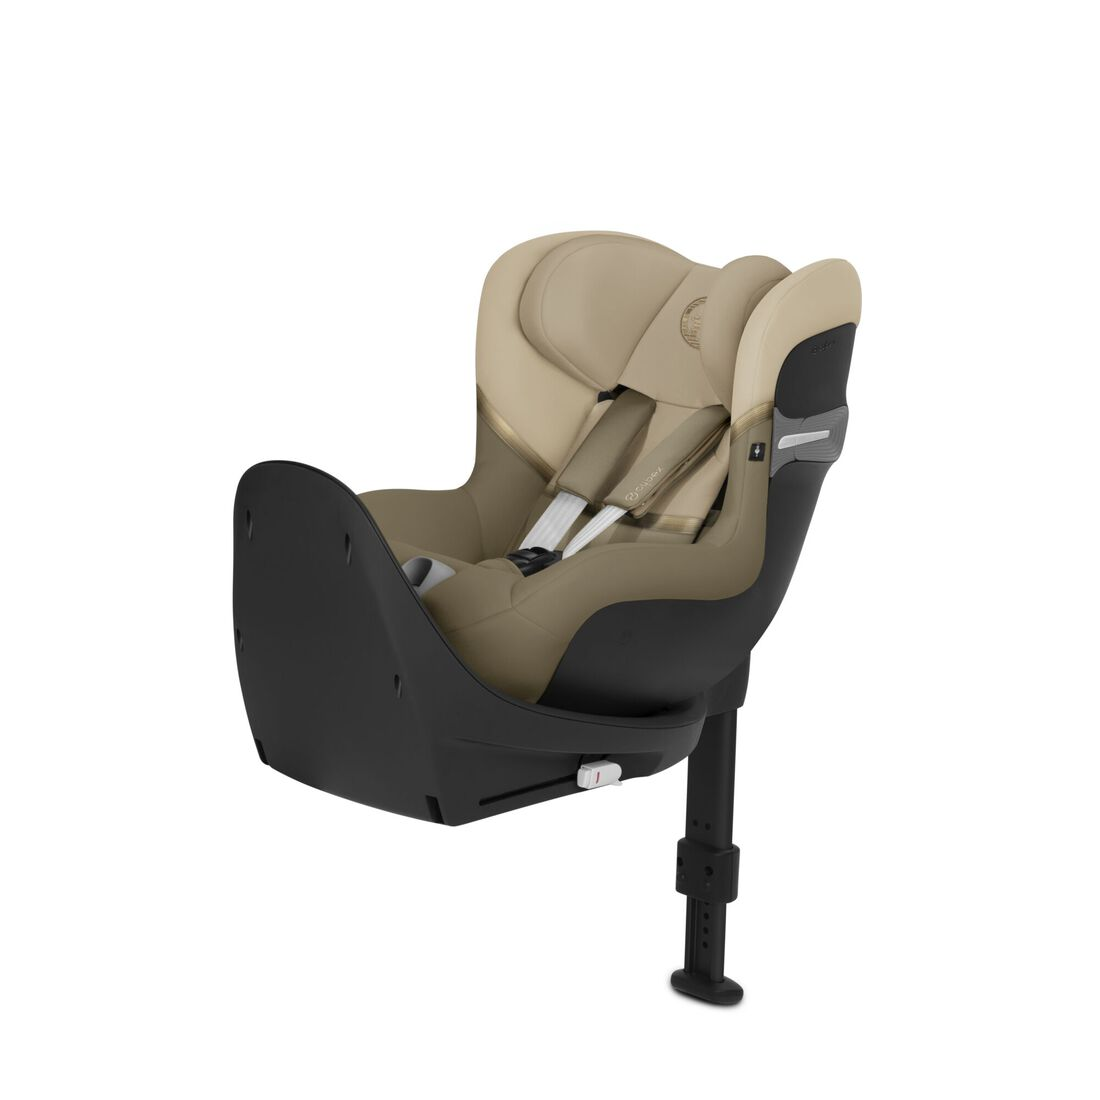 CYBEX Sirona SX2 i-Size - Classic Beige in Classic Beige large image number 1